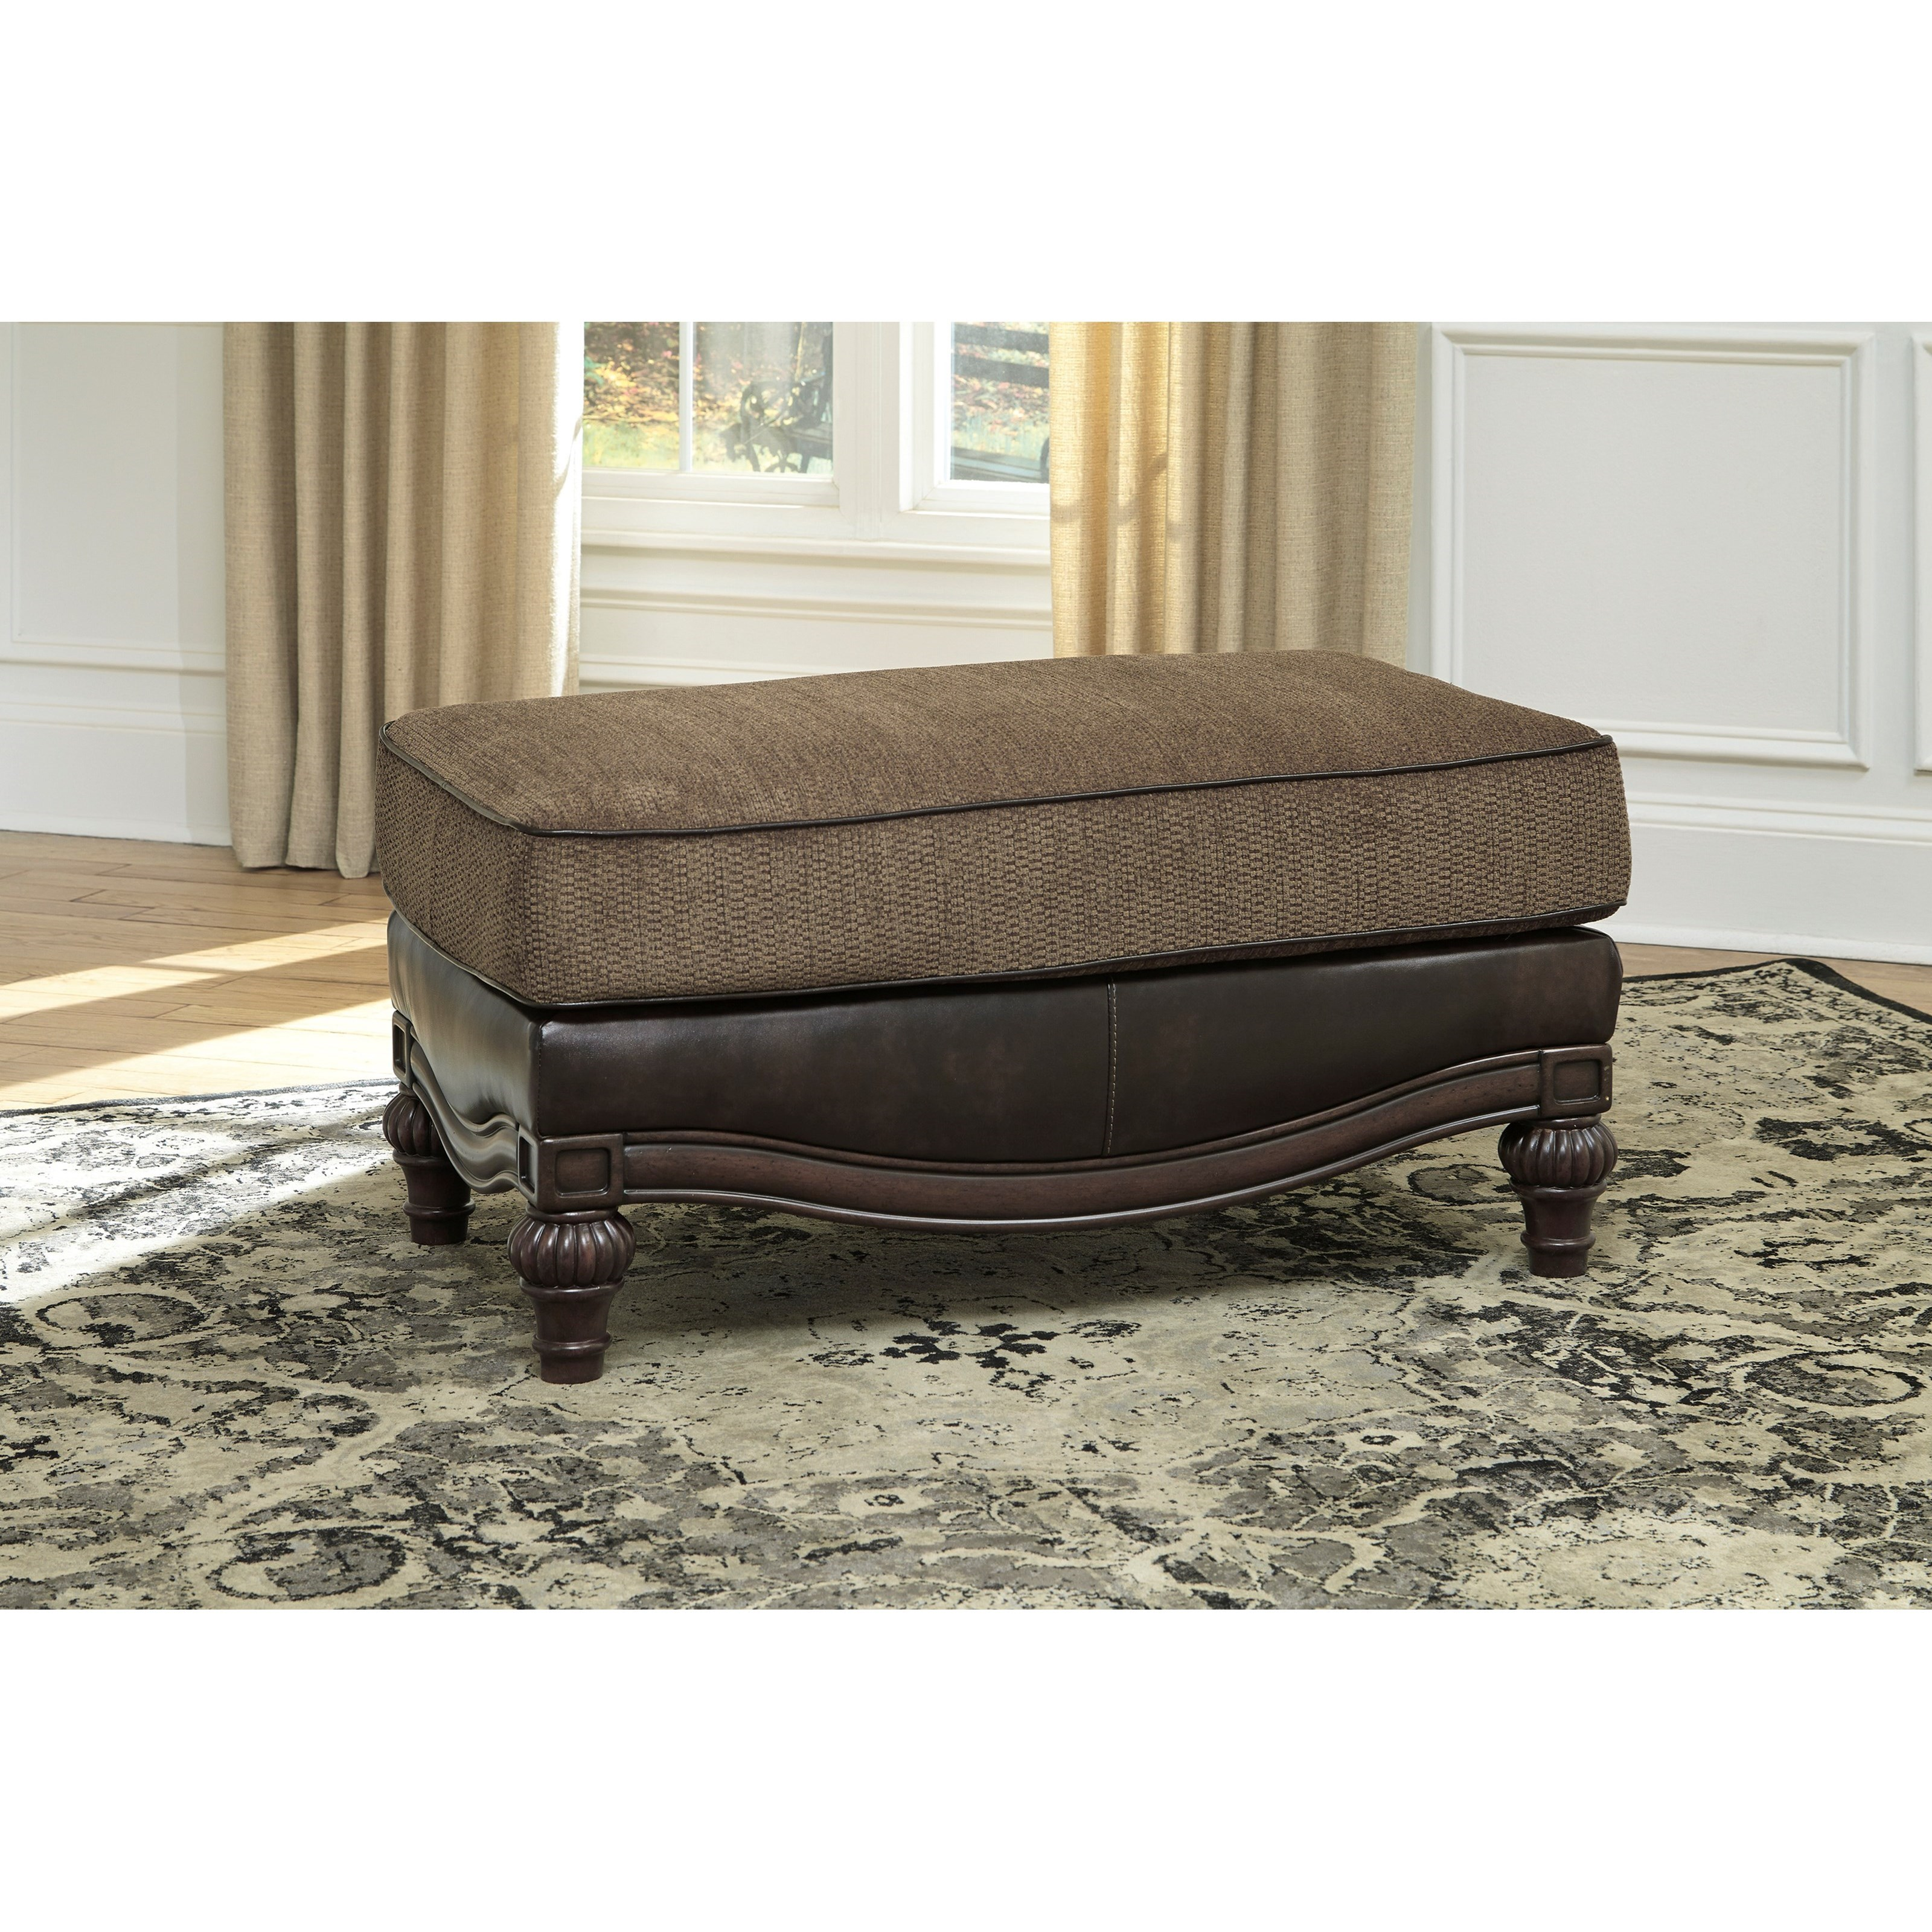 Traditional Chair and a Half & Ottoman by Signature Design by